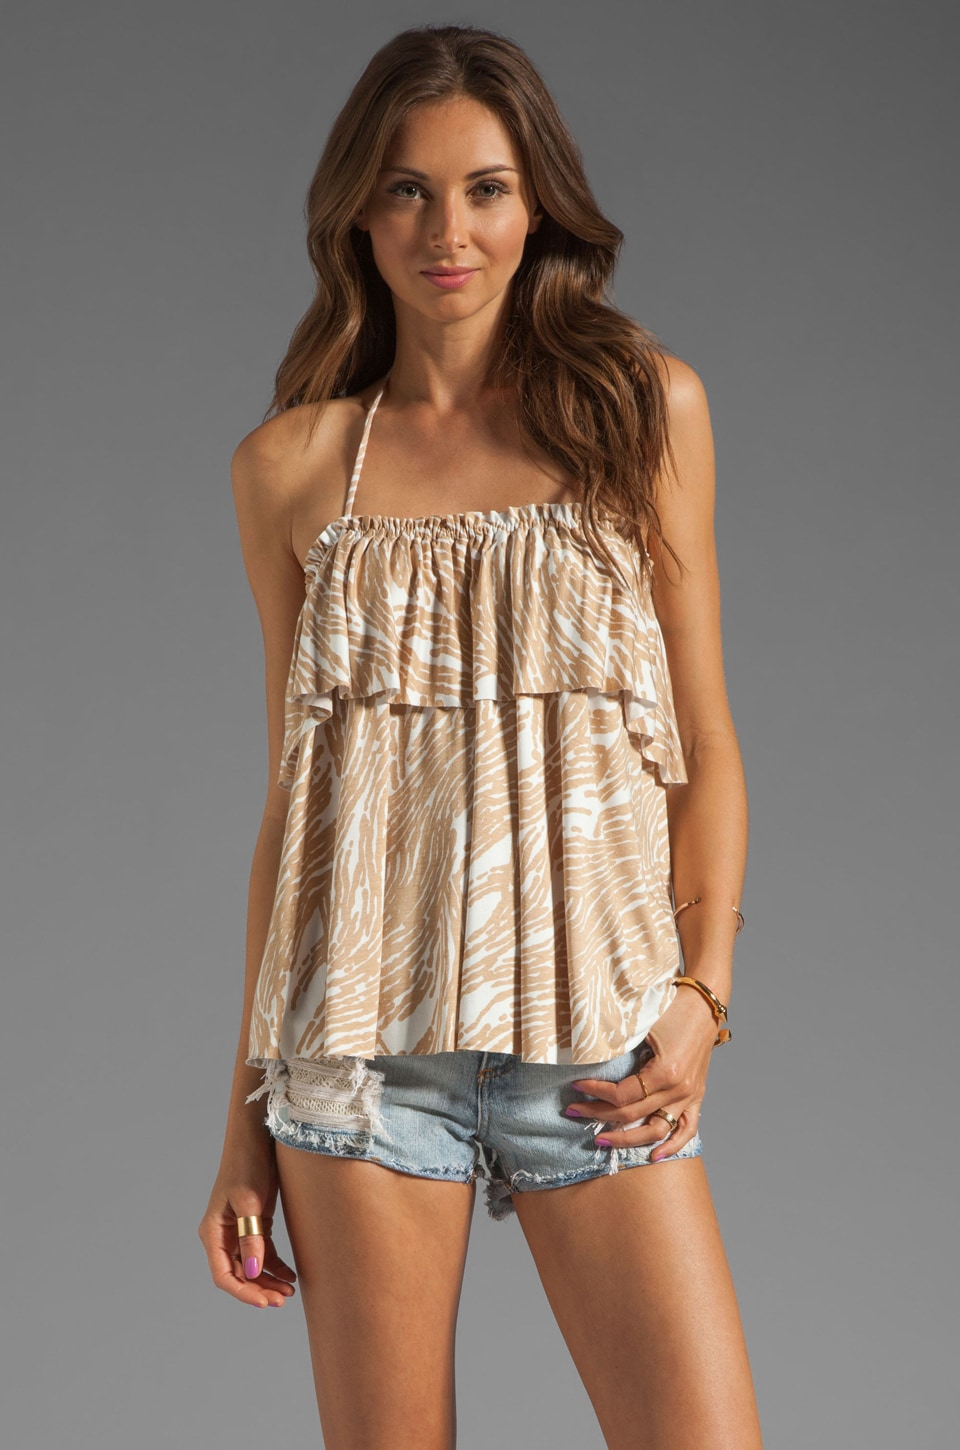 Rachel Pally Kao Top in Bamboo Current